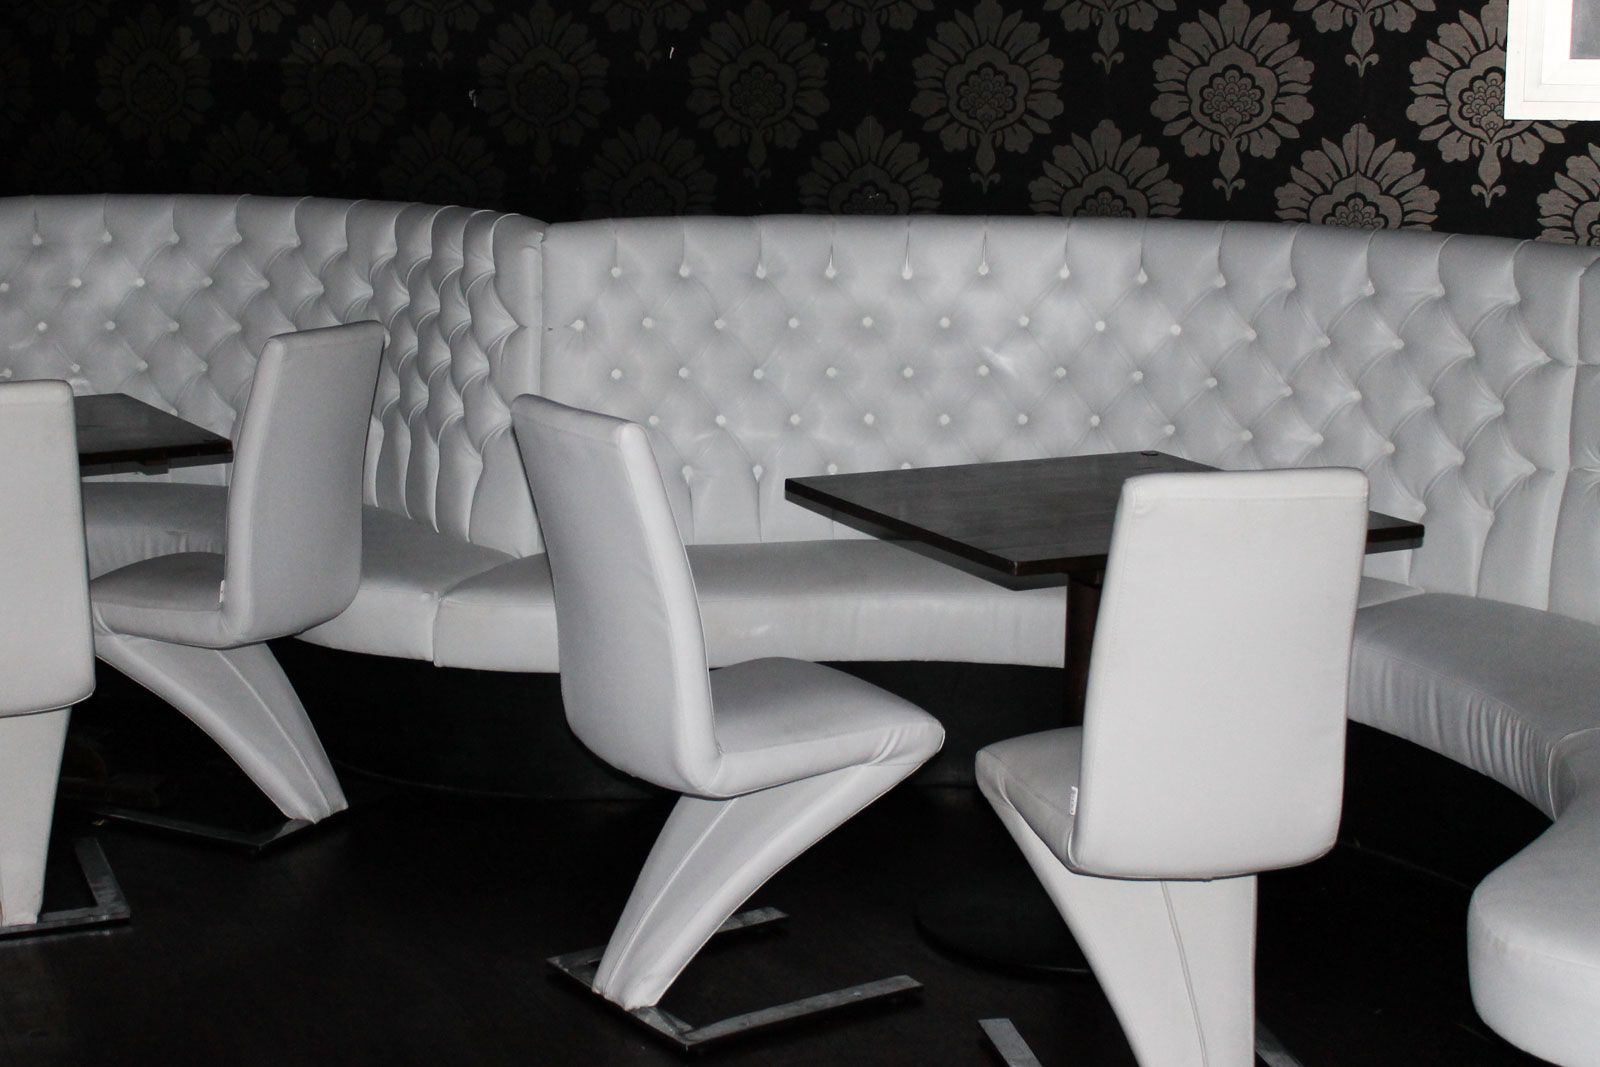 Monochrome Furniture Luxurious Monochrome Banquette Seating And Bar Furniture